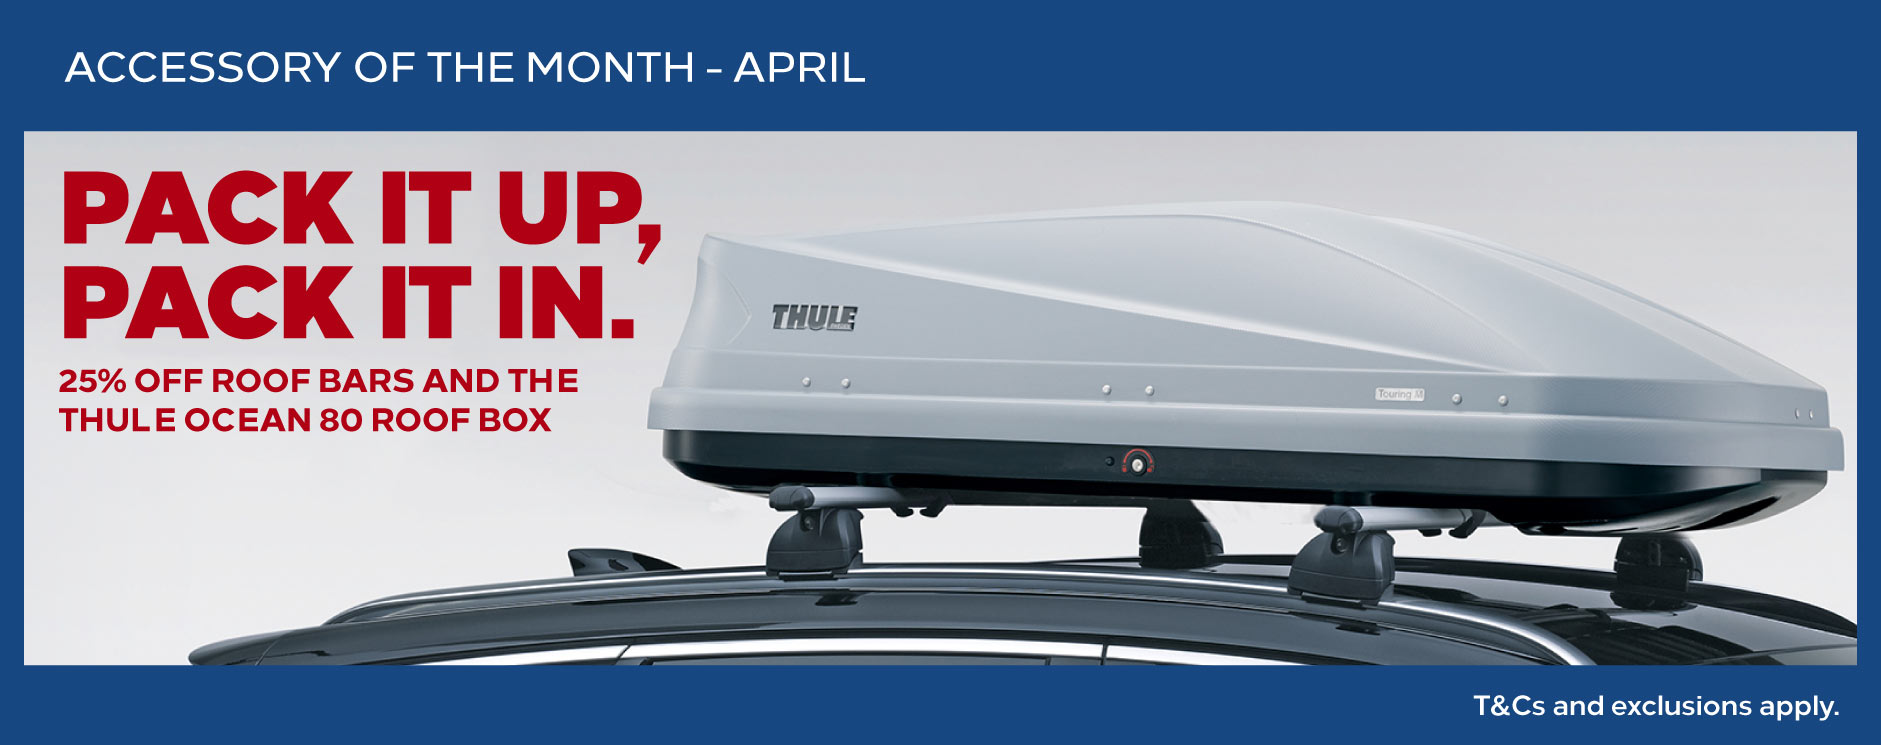 Vauxhall Accessory of the month - April